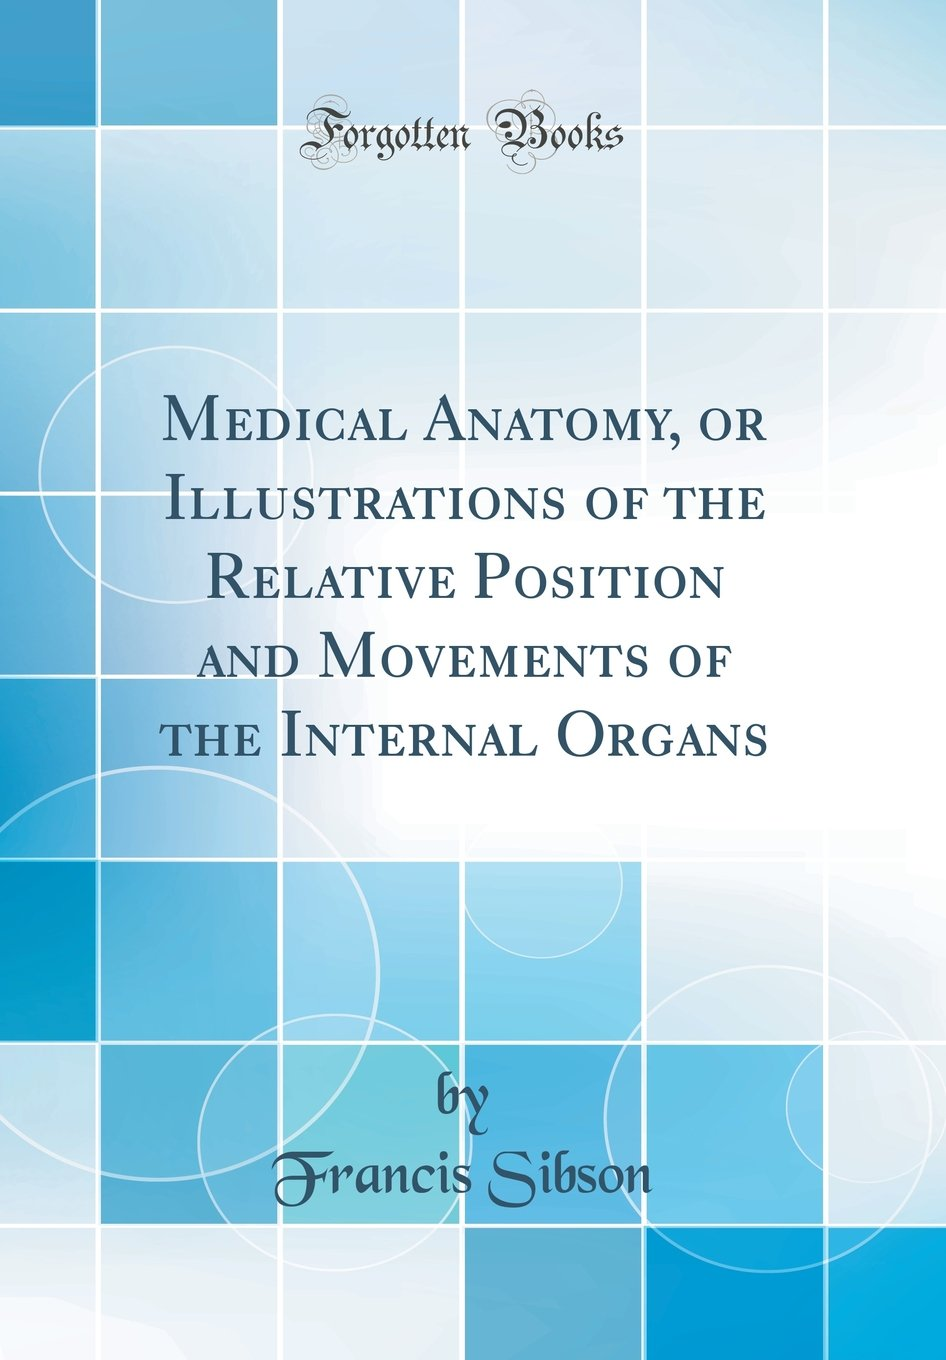 Buy Medical Anatomy Or Illustrations Of The Relative Position And